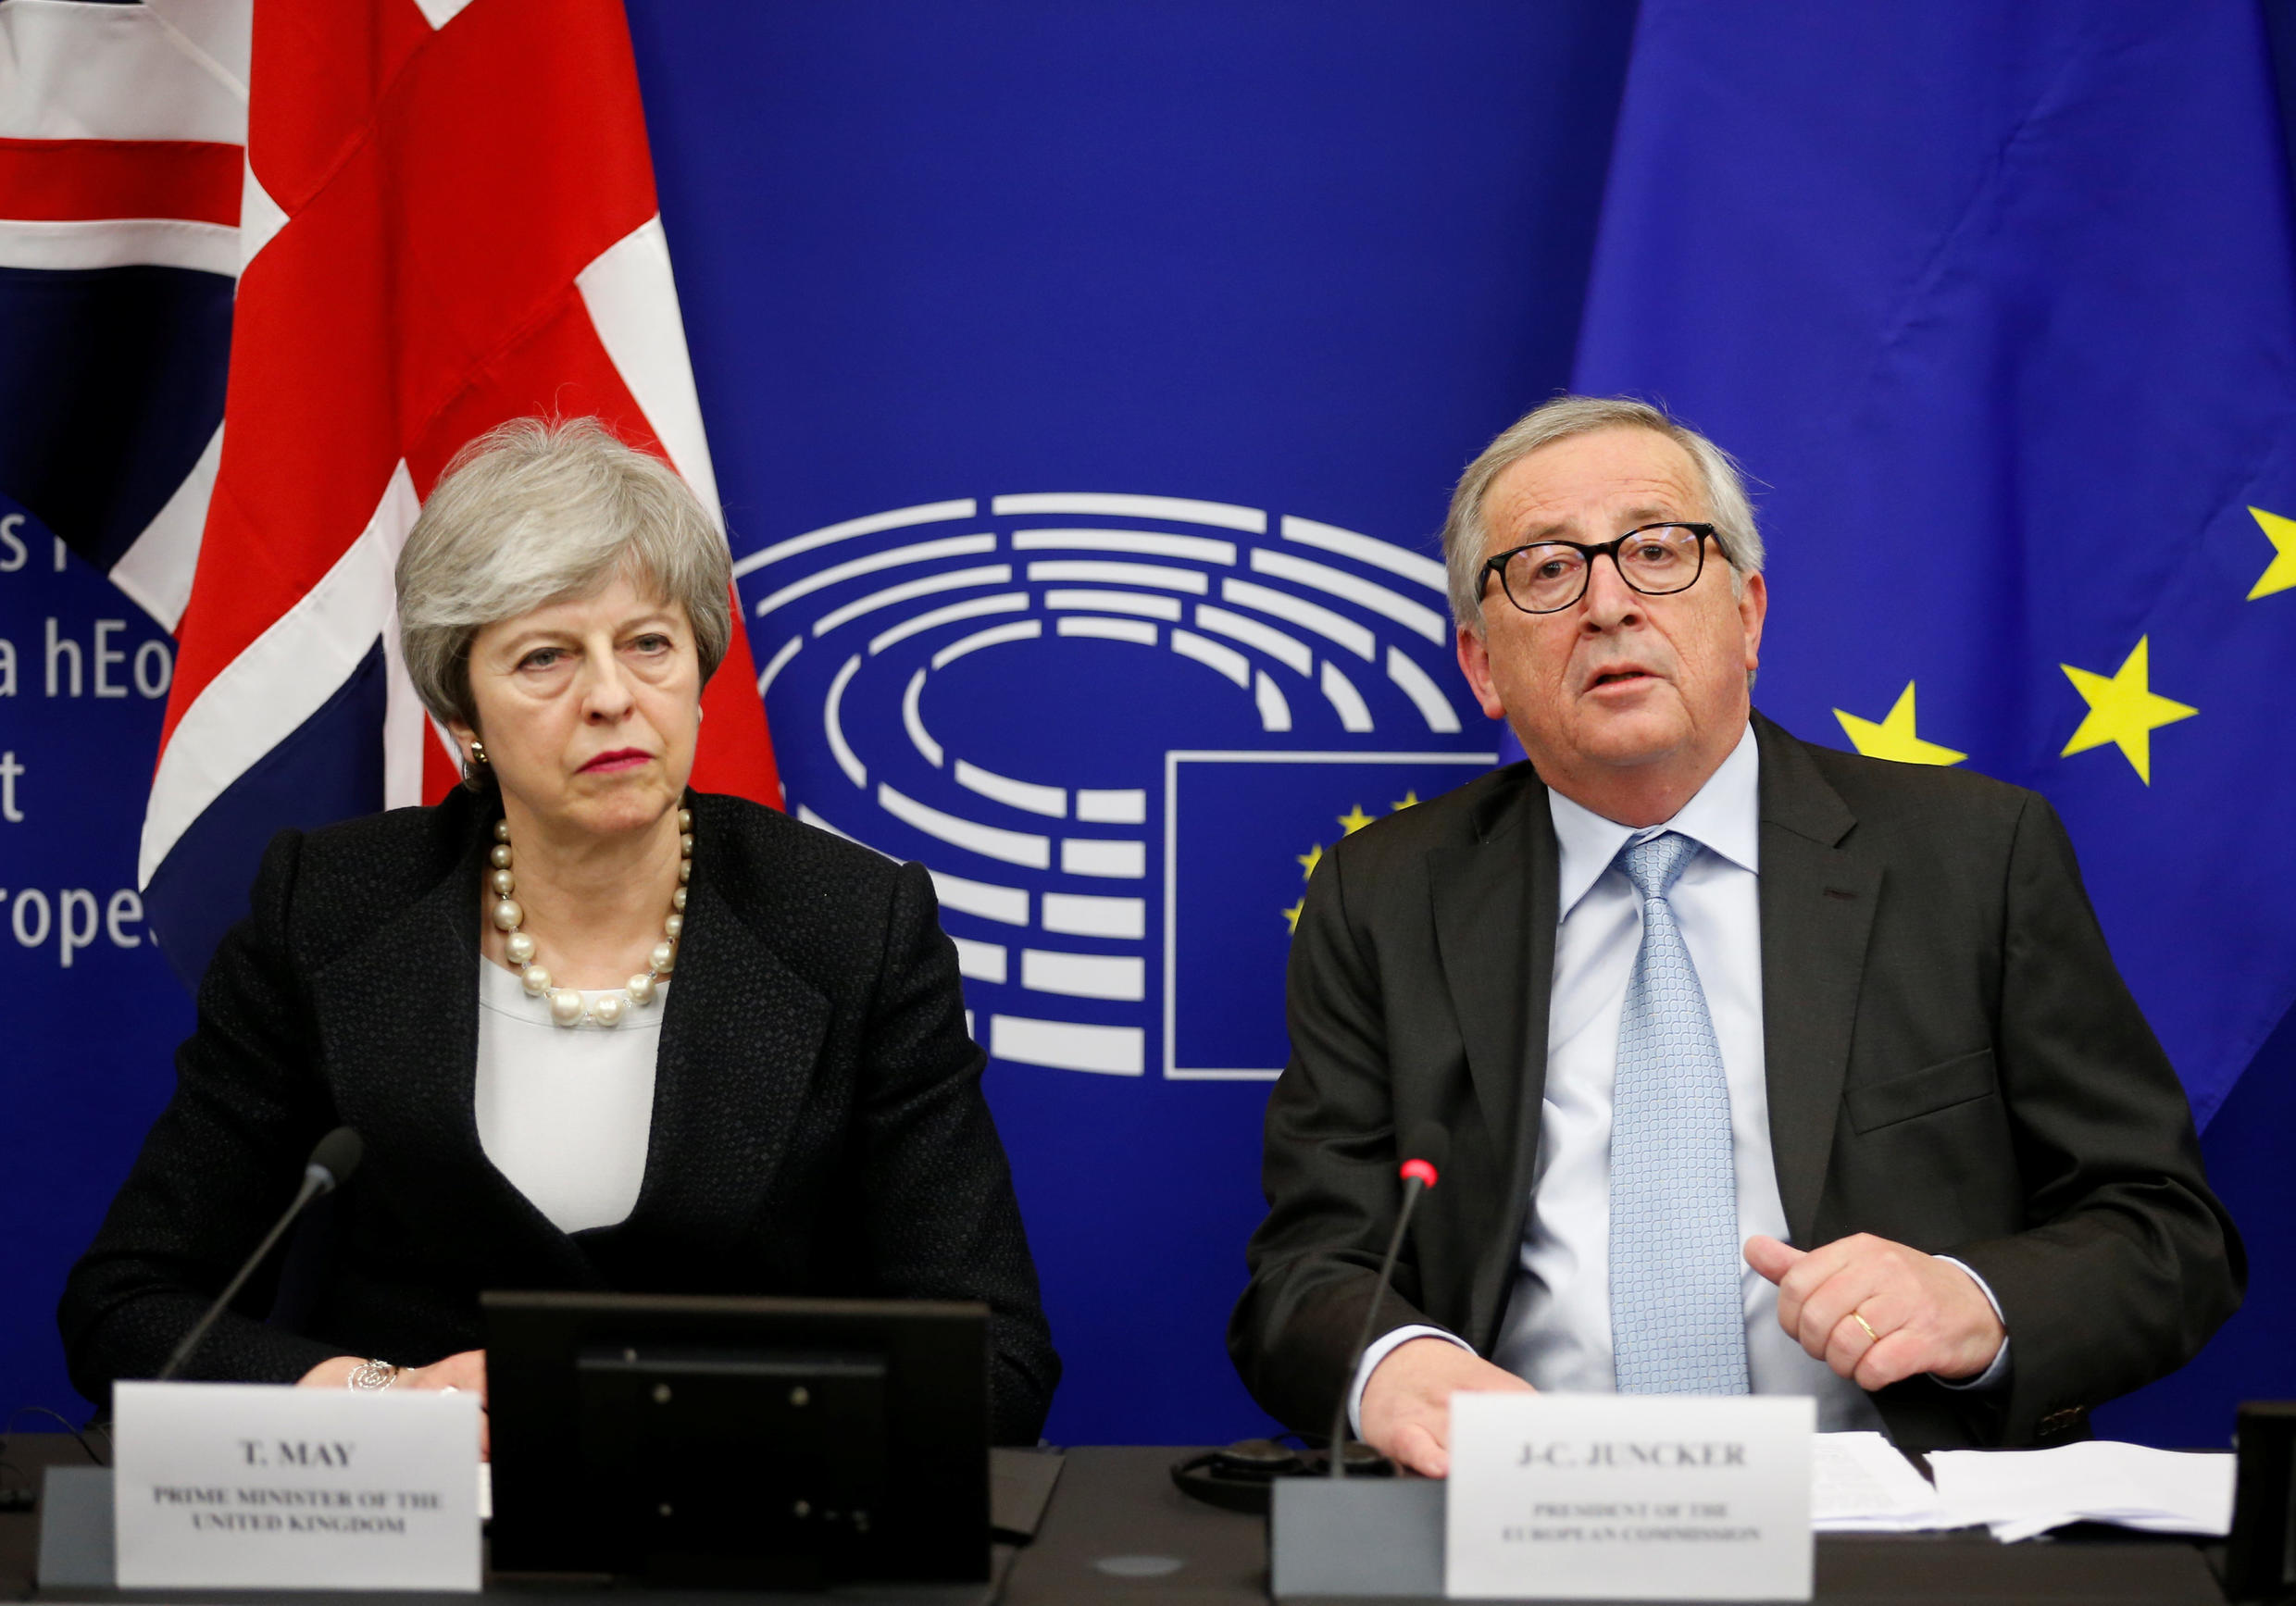 Theresa May and Jean-Claude Juncker present their new Brexit plan on March 11, 2019.